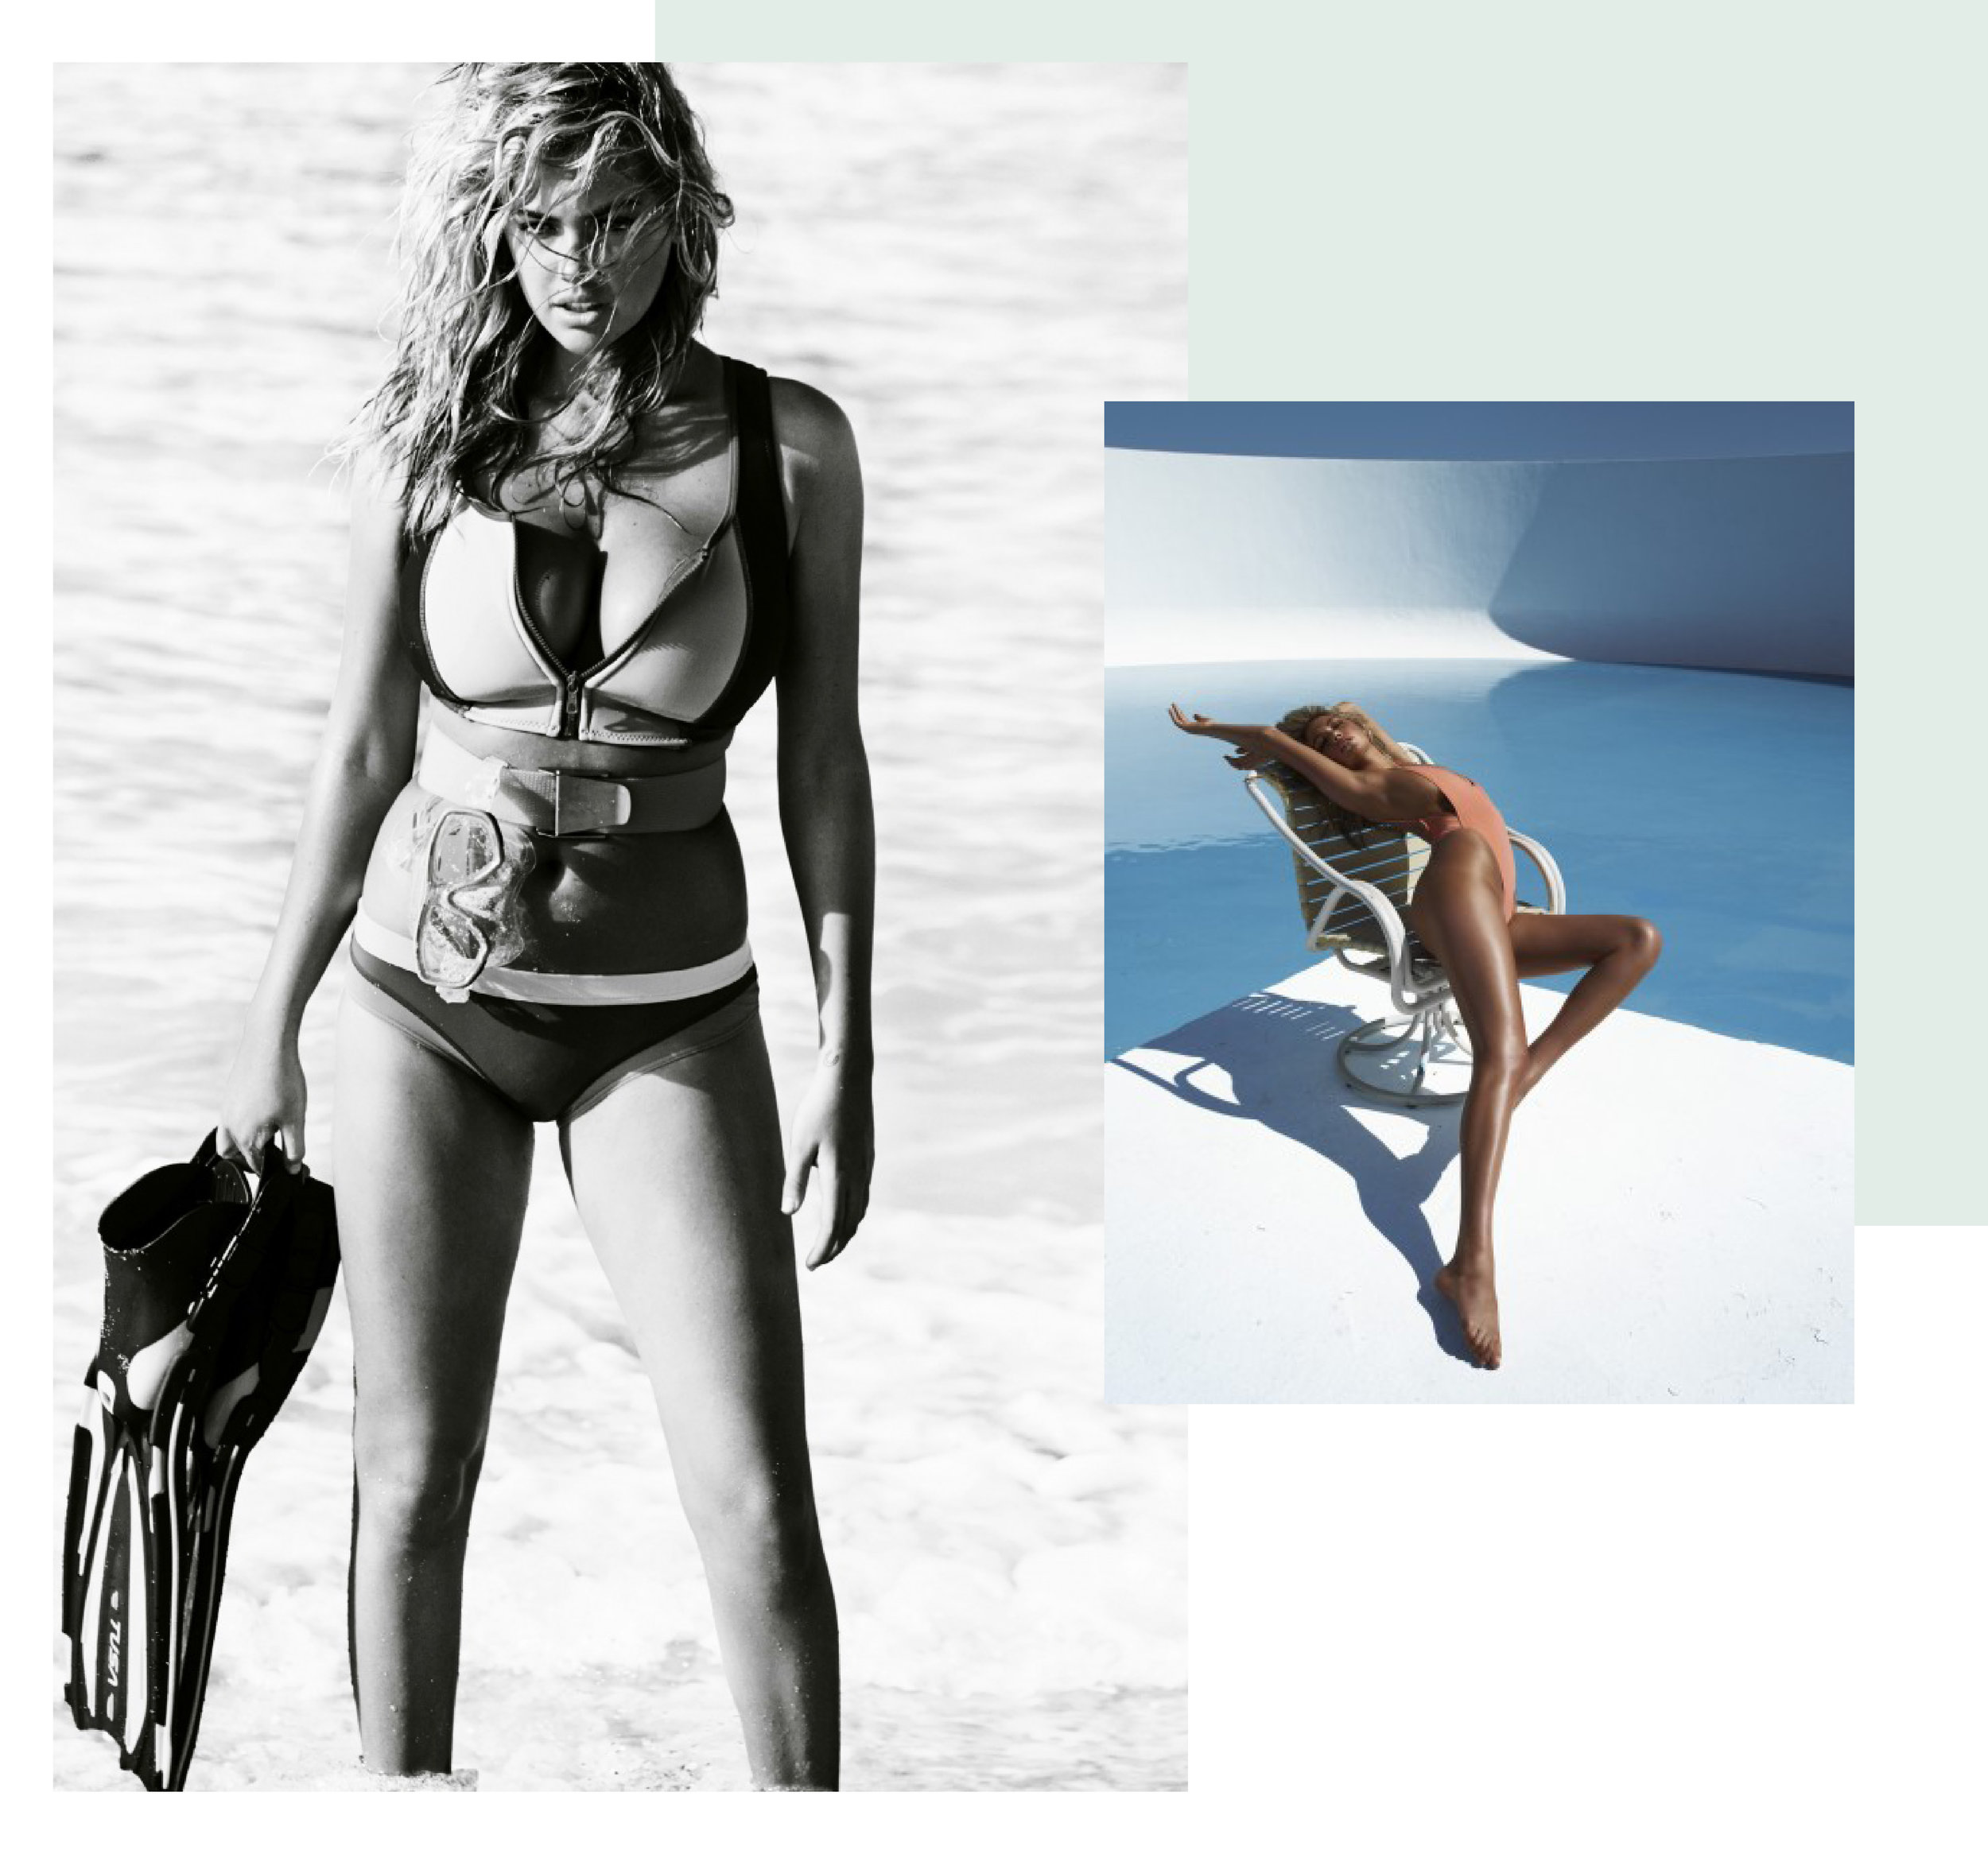 Summer-snaps-by-favourite-fashion-photographers-mario-testino-swimsuit-bikini-beach-surf-black-and-white-editorial-photoshoot-01